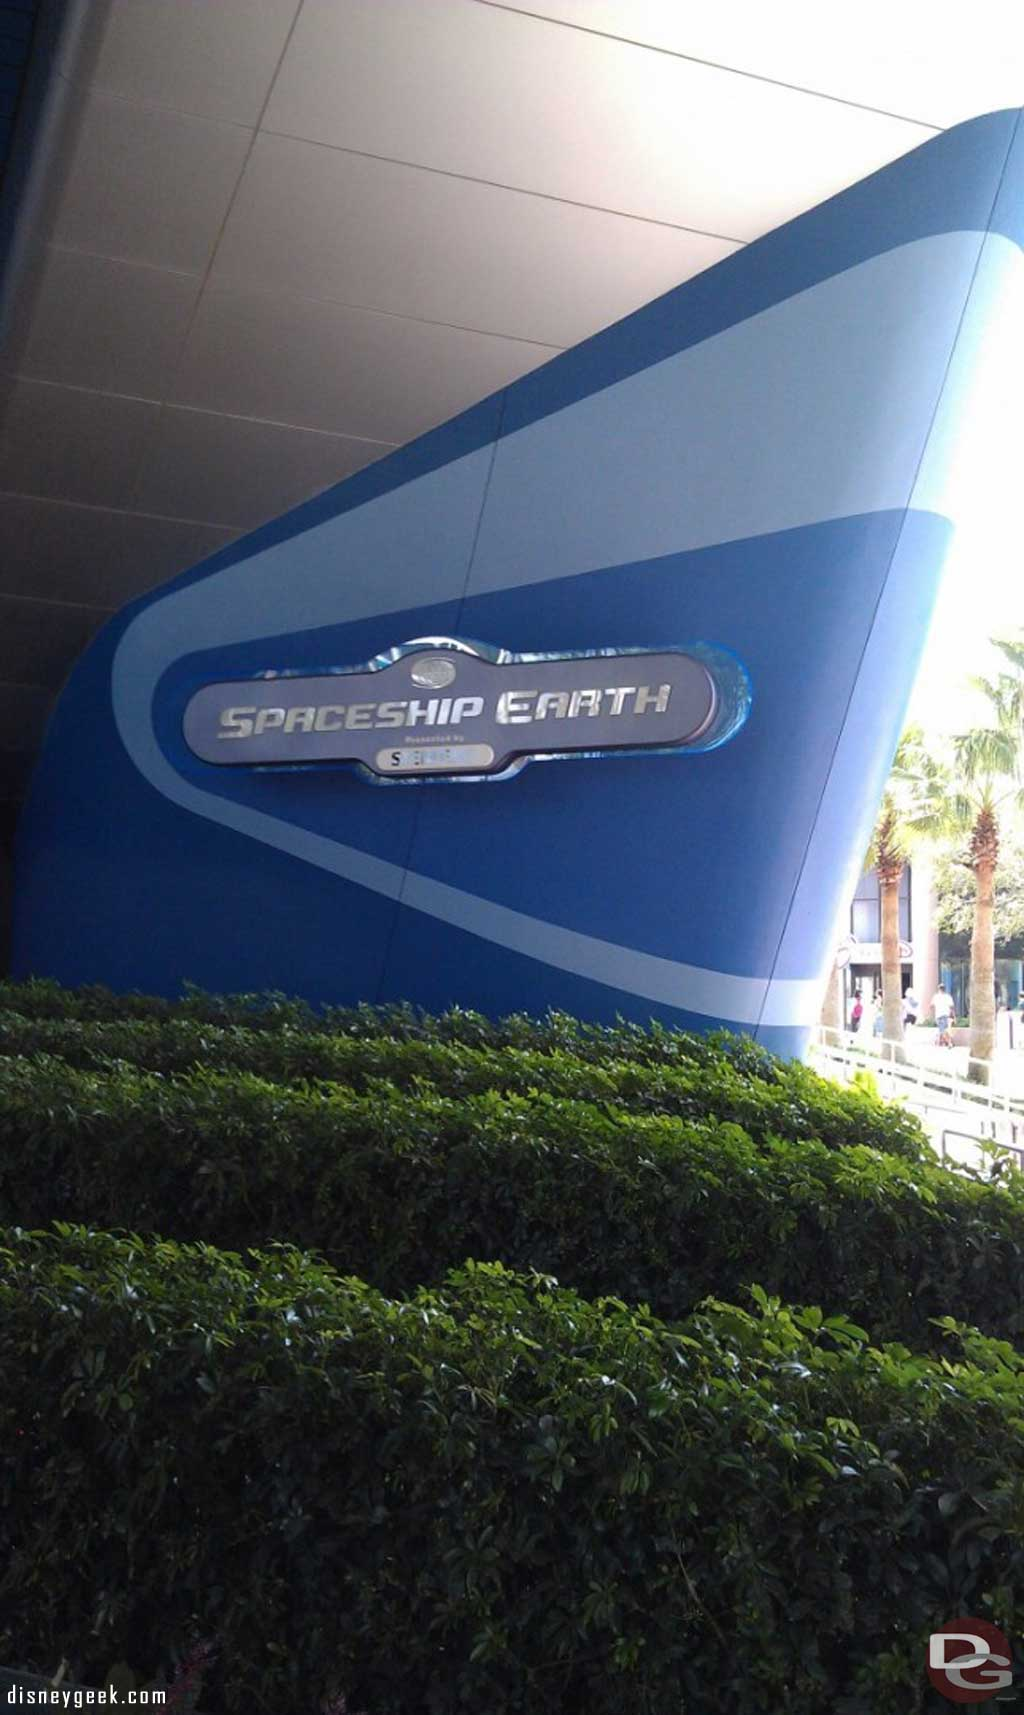 Time for one last trip through Spaceship Earth